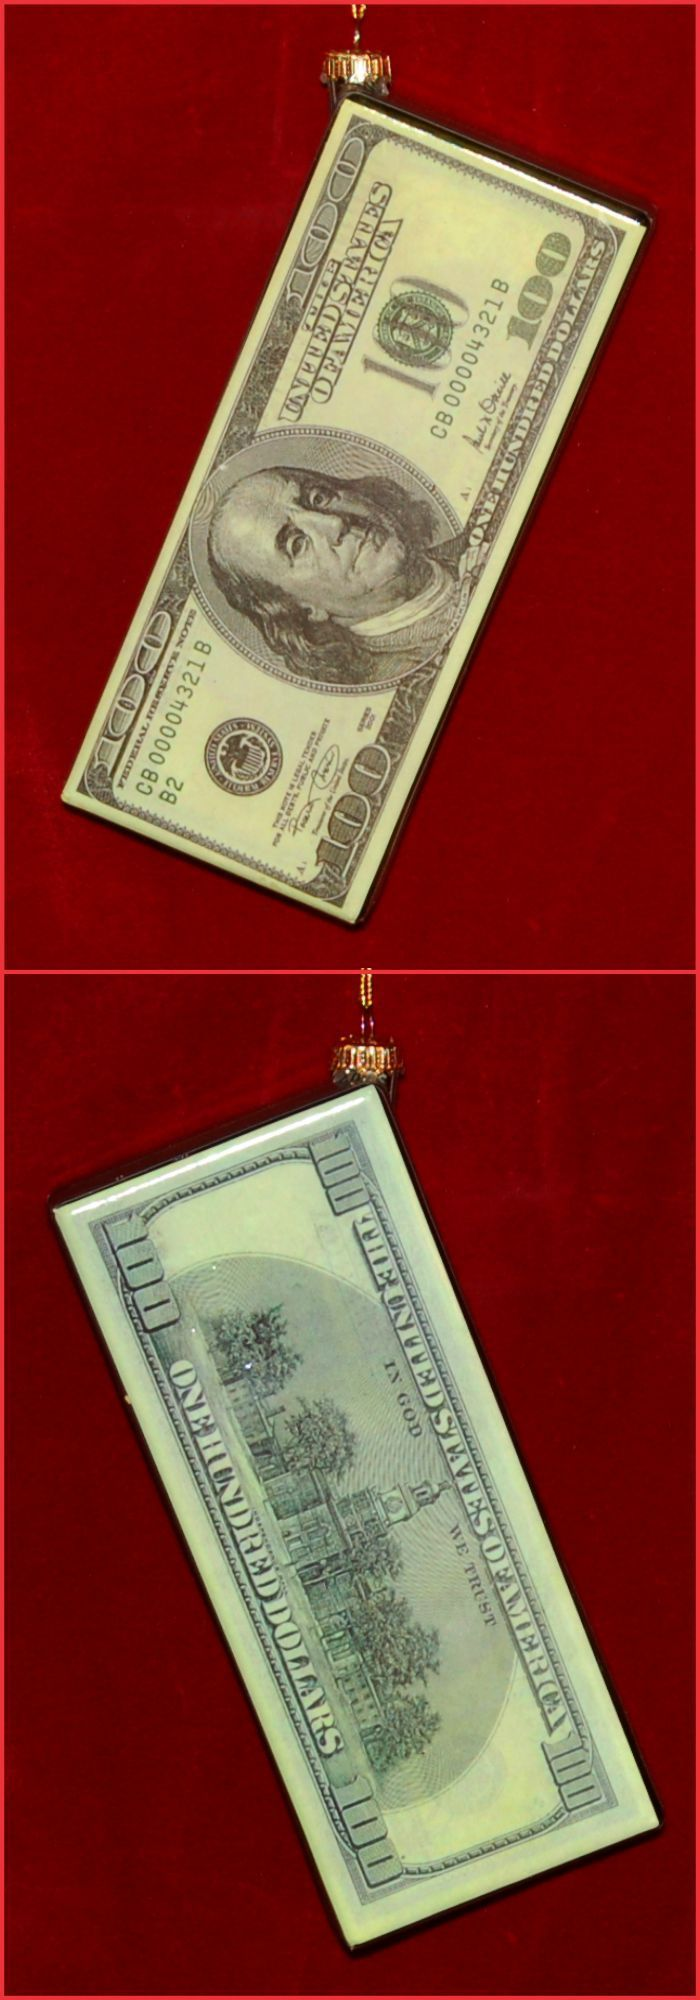 Hundred Dollar Bill Christmas Ornament Personalized by Russell Rhodes